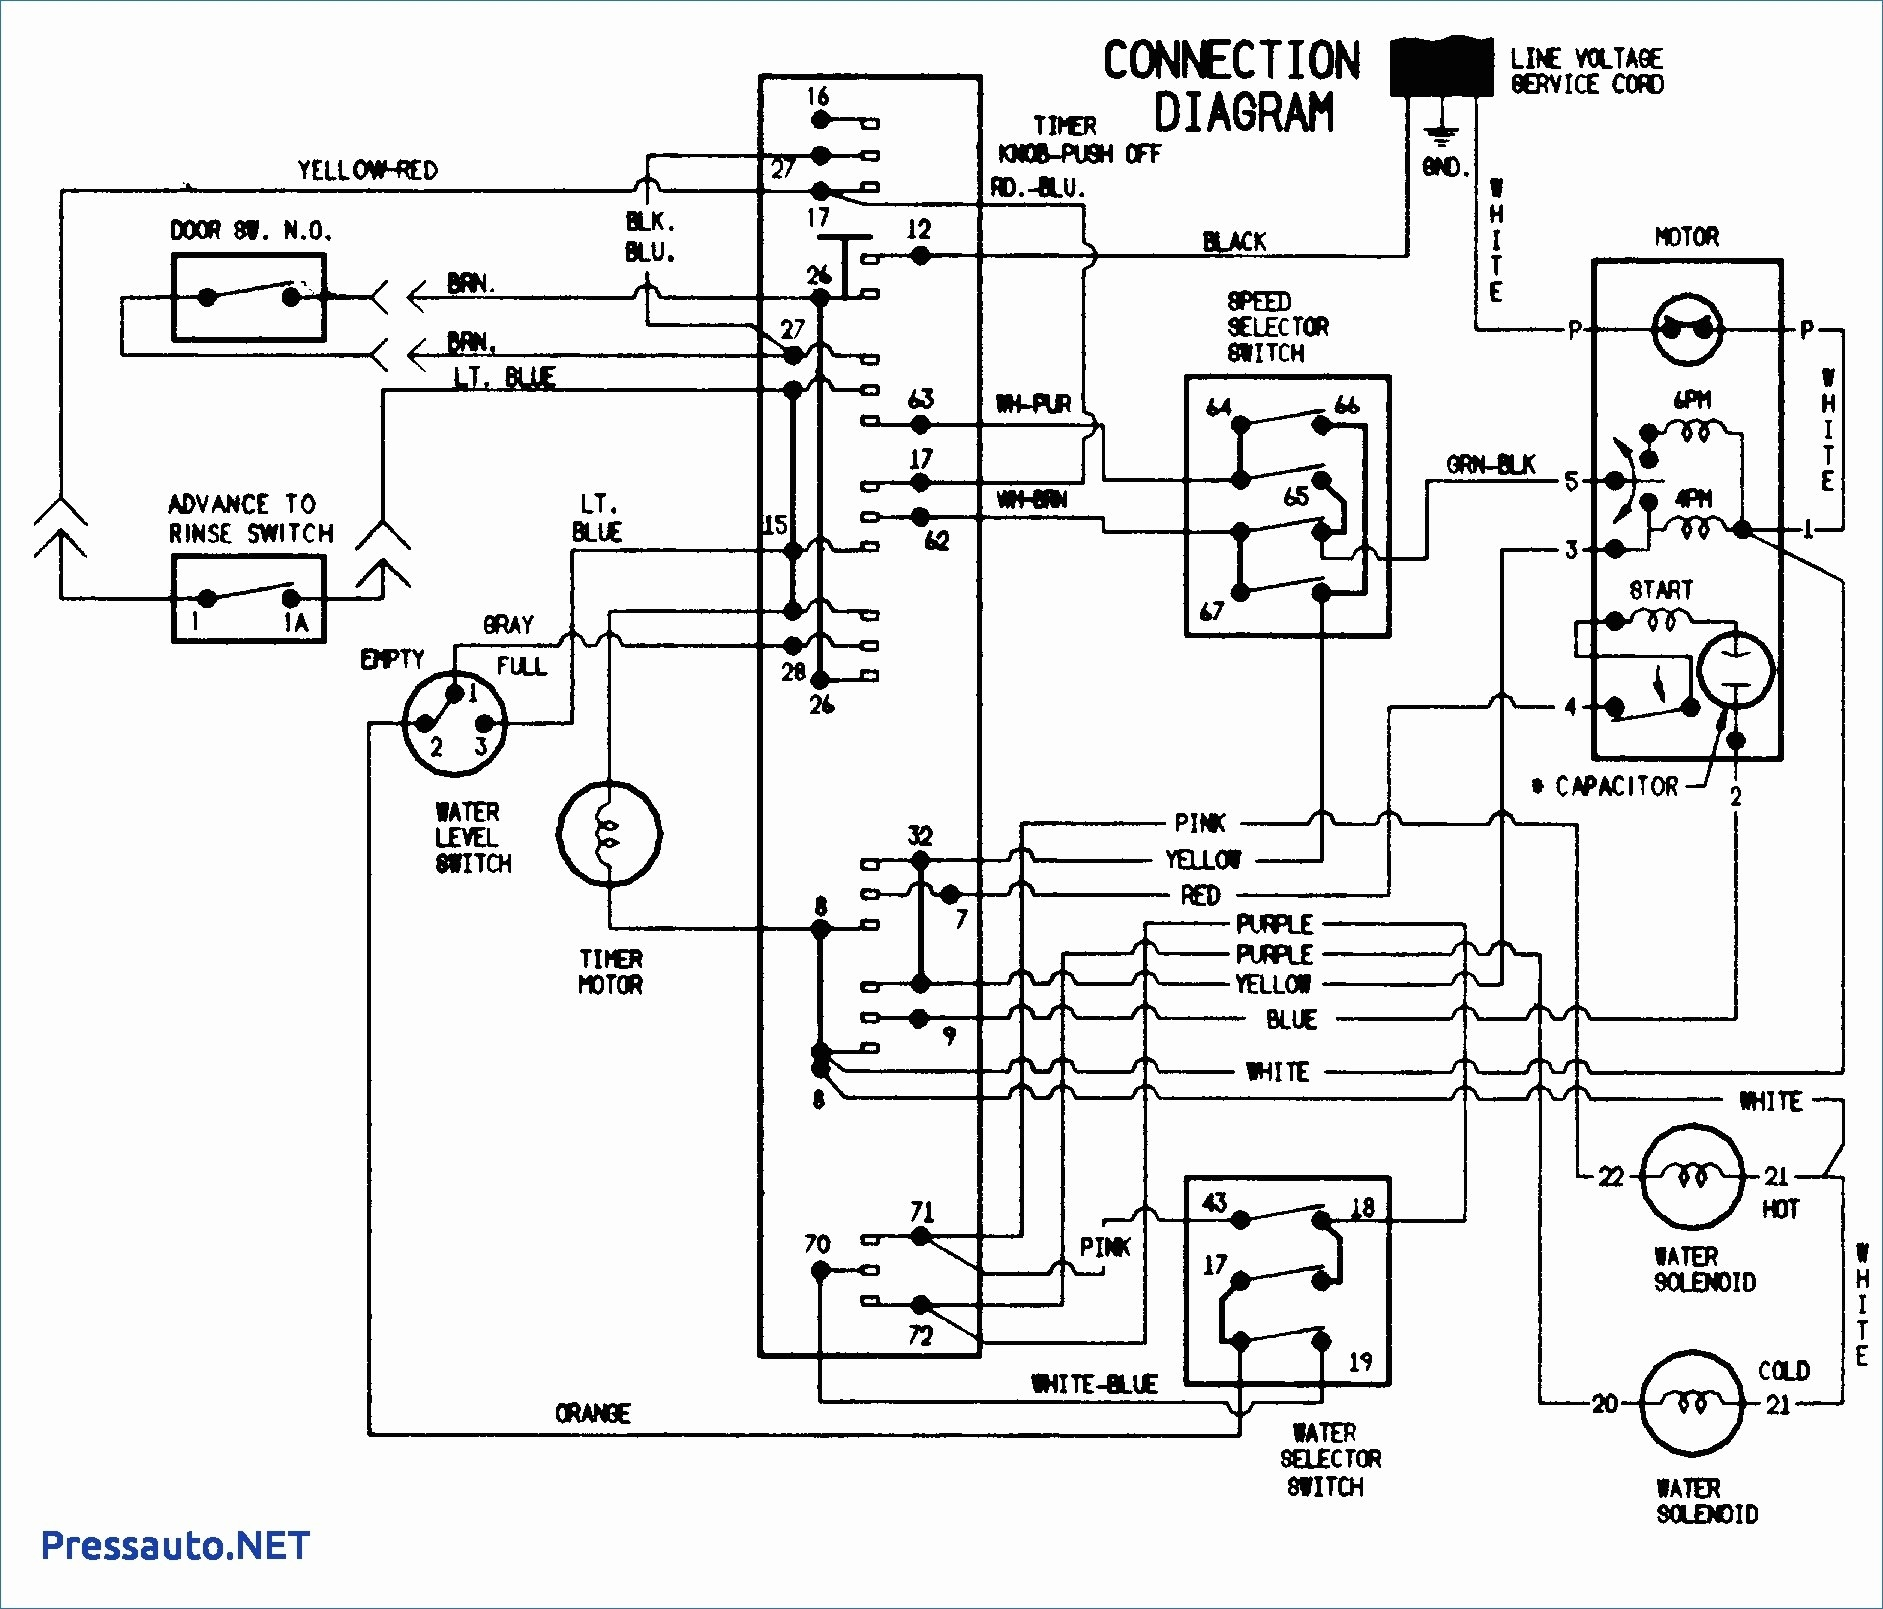 maytag centennial washer wiring diagram | free wiring diagram old maytag electric dryer wiring diagram for